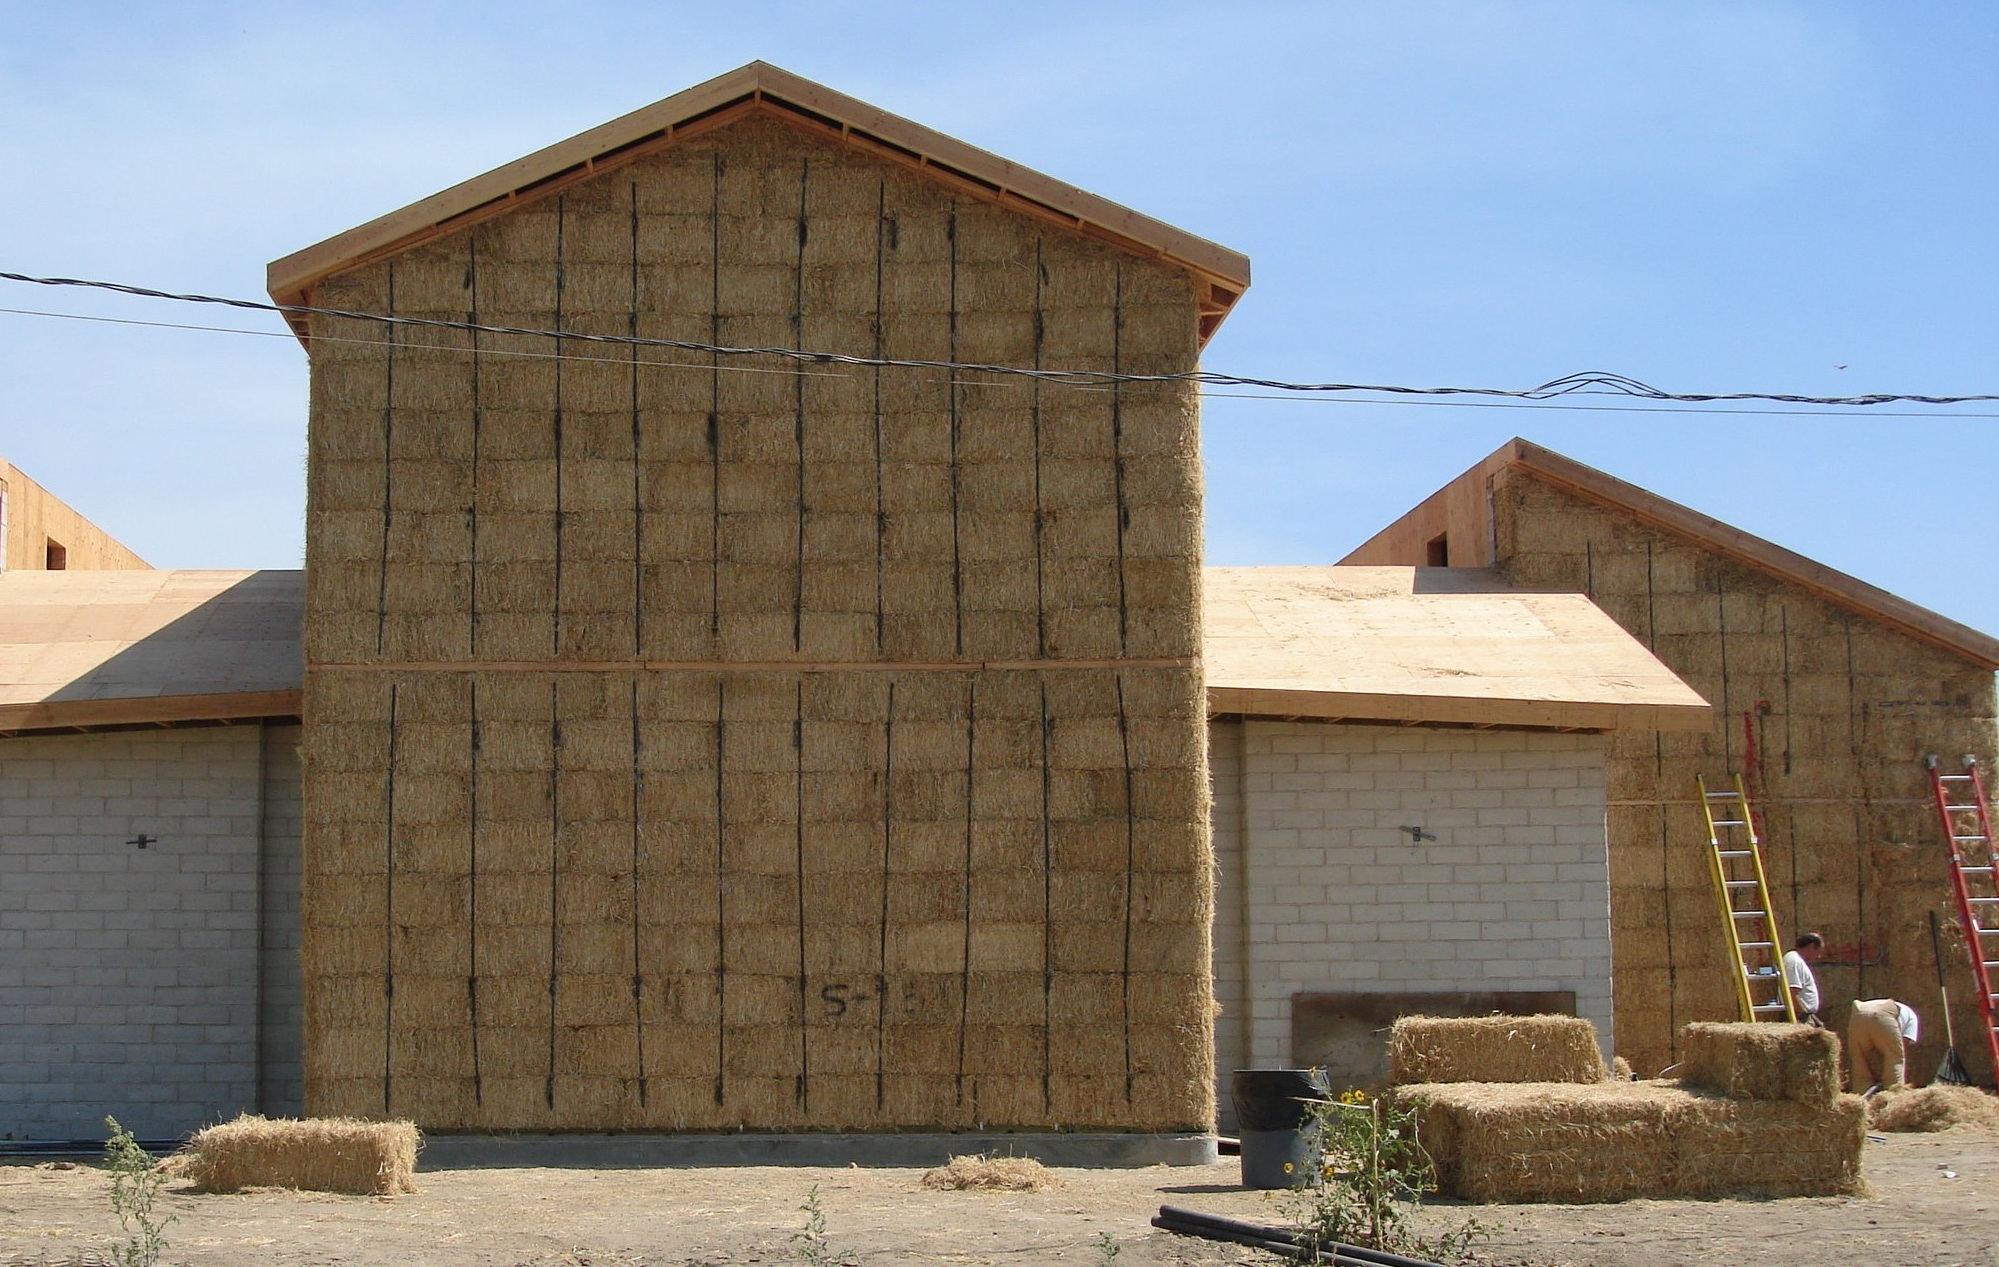 DURABLE, QUIET & FIRE-RESISTANT - Straw Bale walls are strong, durable, and highly fire-resistant. They effectively shut-out environmental noise produced by traffic, freeways and other sources, resulting in quieter spaces in which to live and work. They have an equivalent Sound Transmission Rating (STC) of >50.